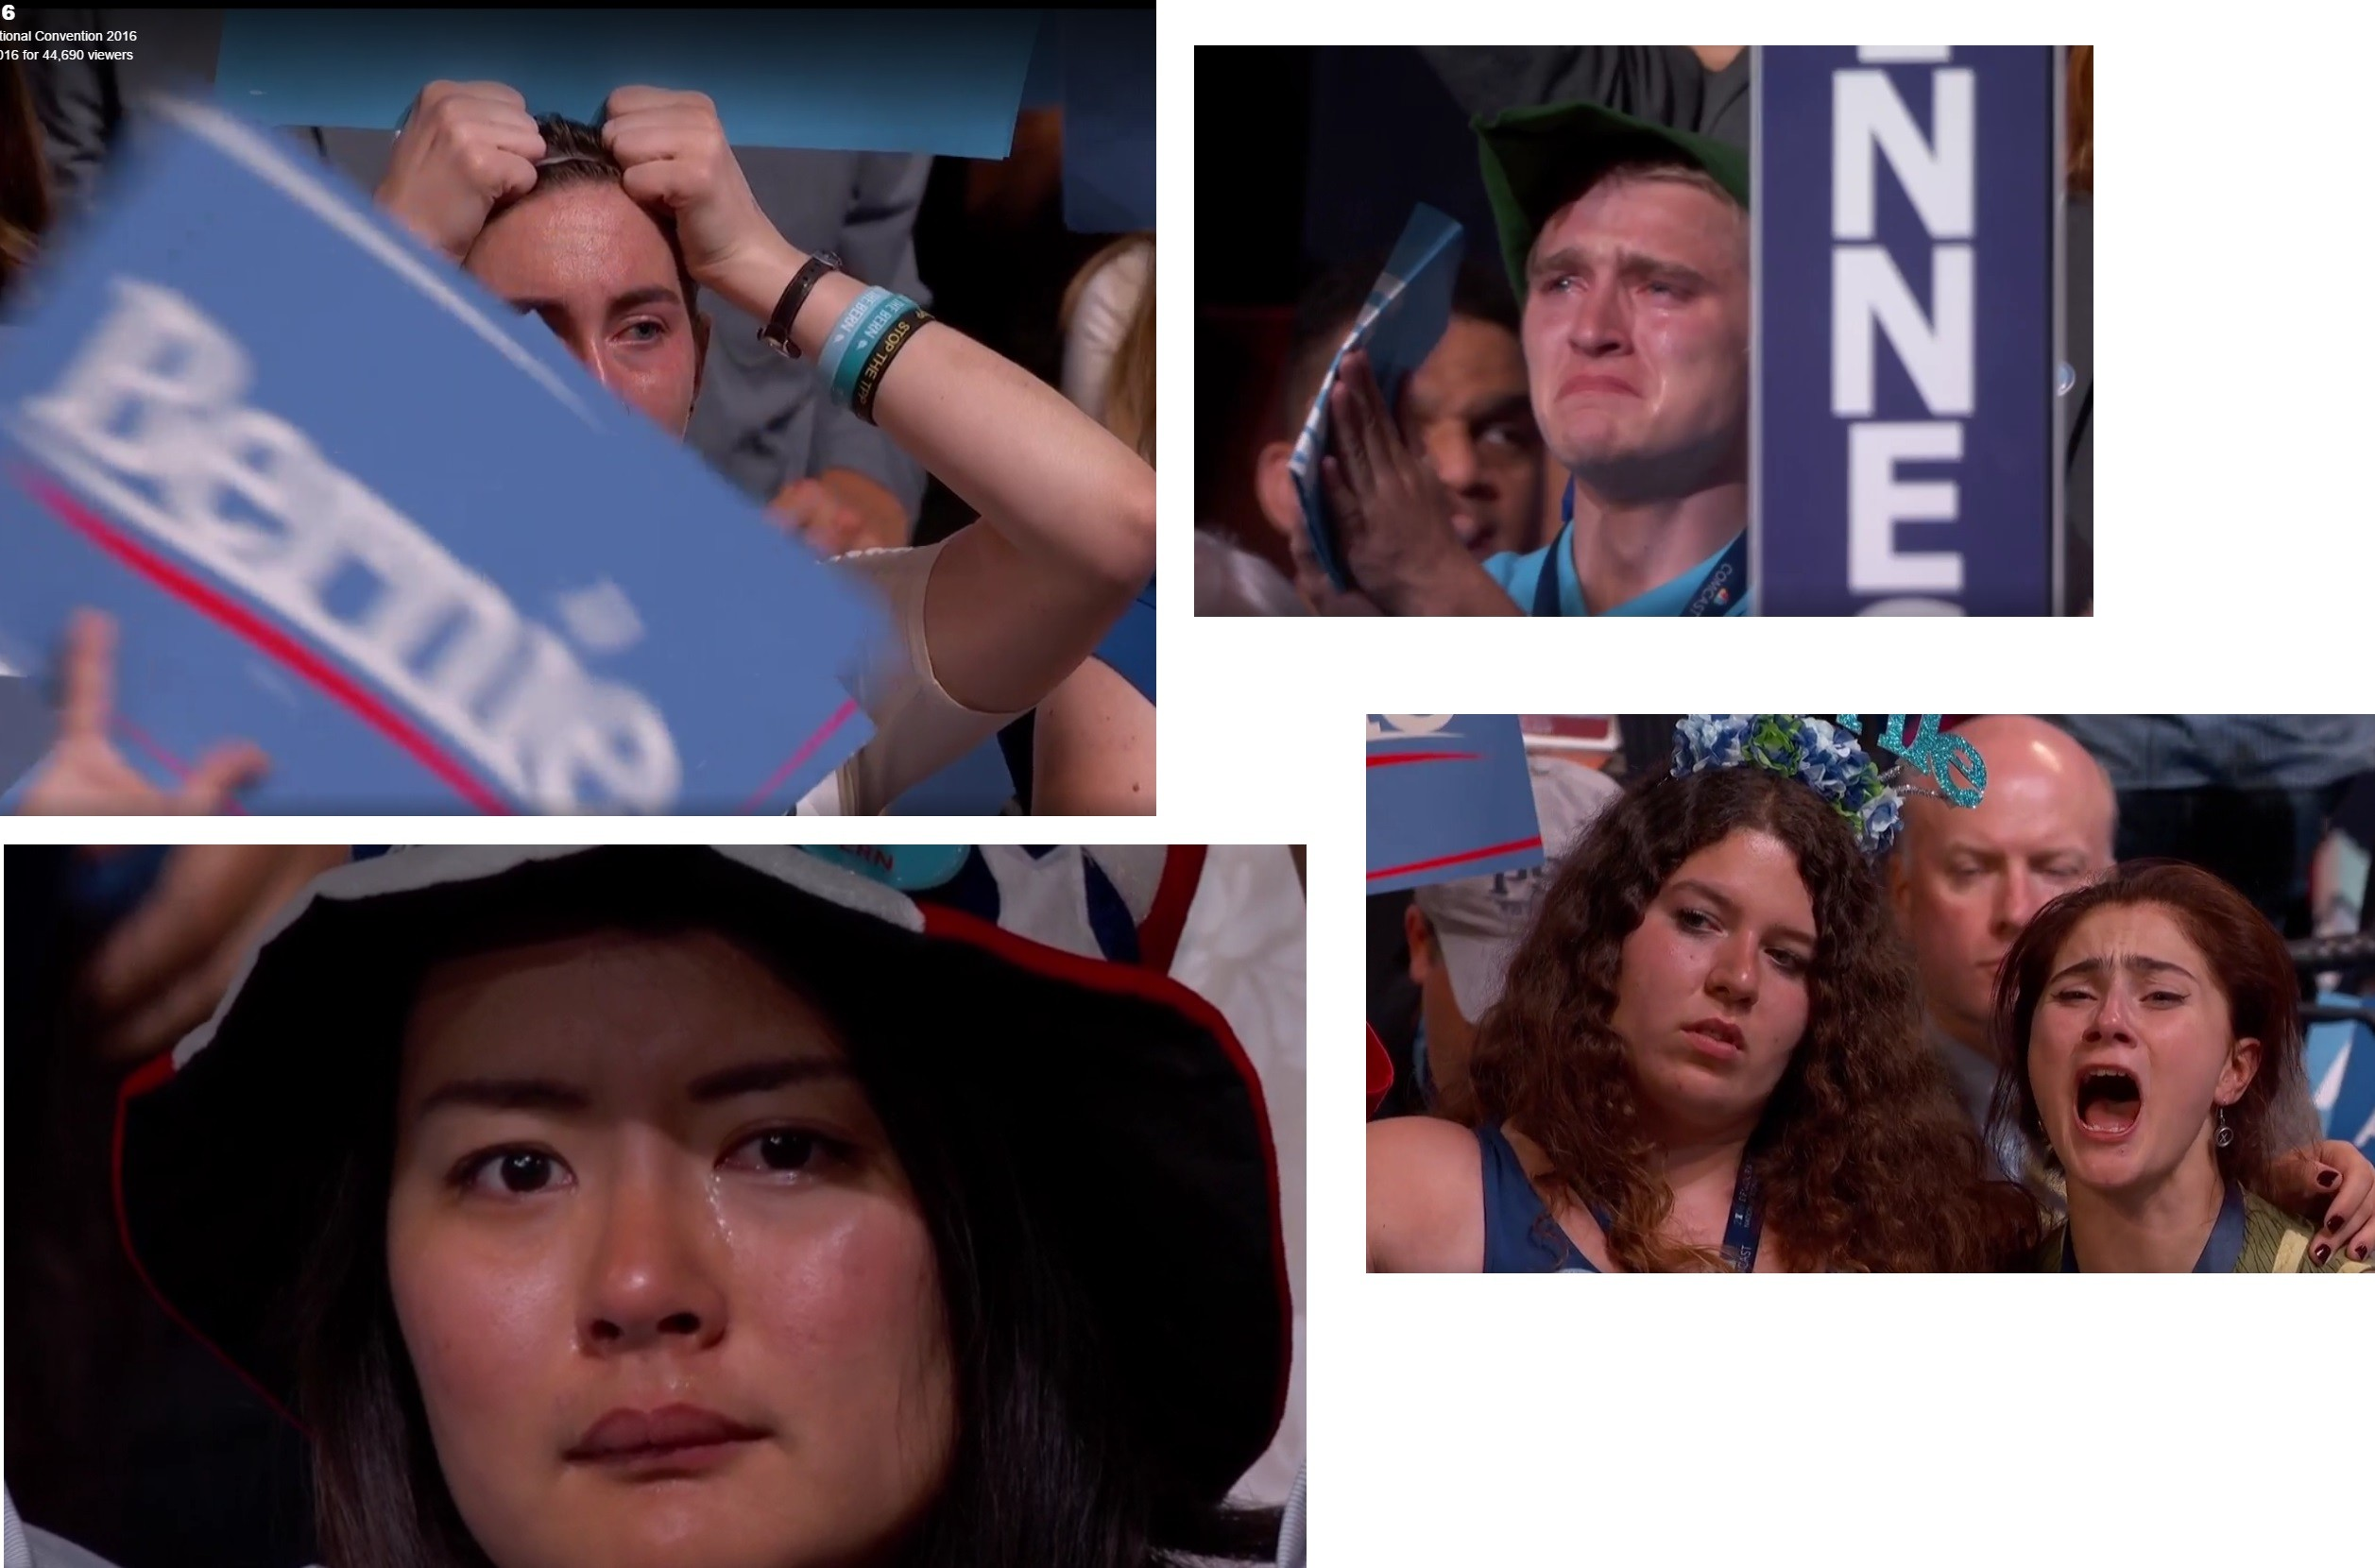 jebL11 hillary clinton know your meme,Hillary Supporters Crying Meme